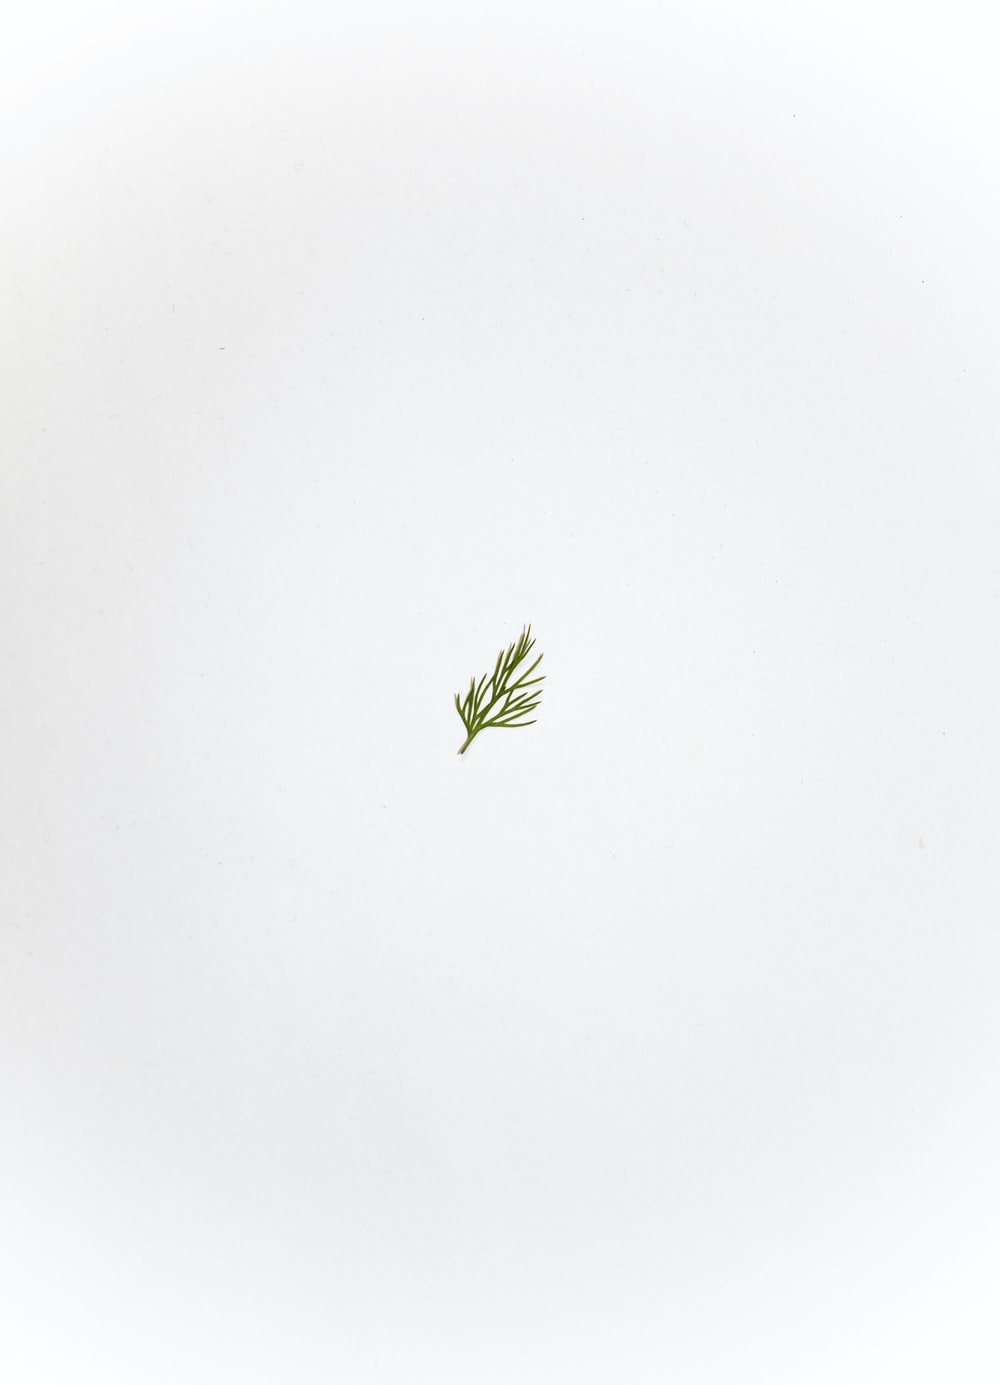 green leaf on white ceramic plate